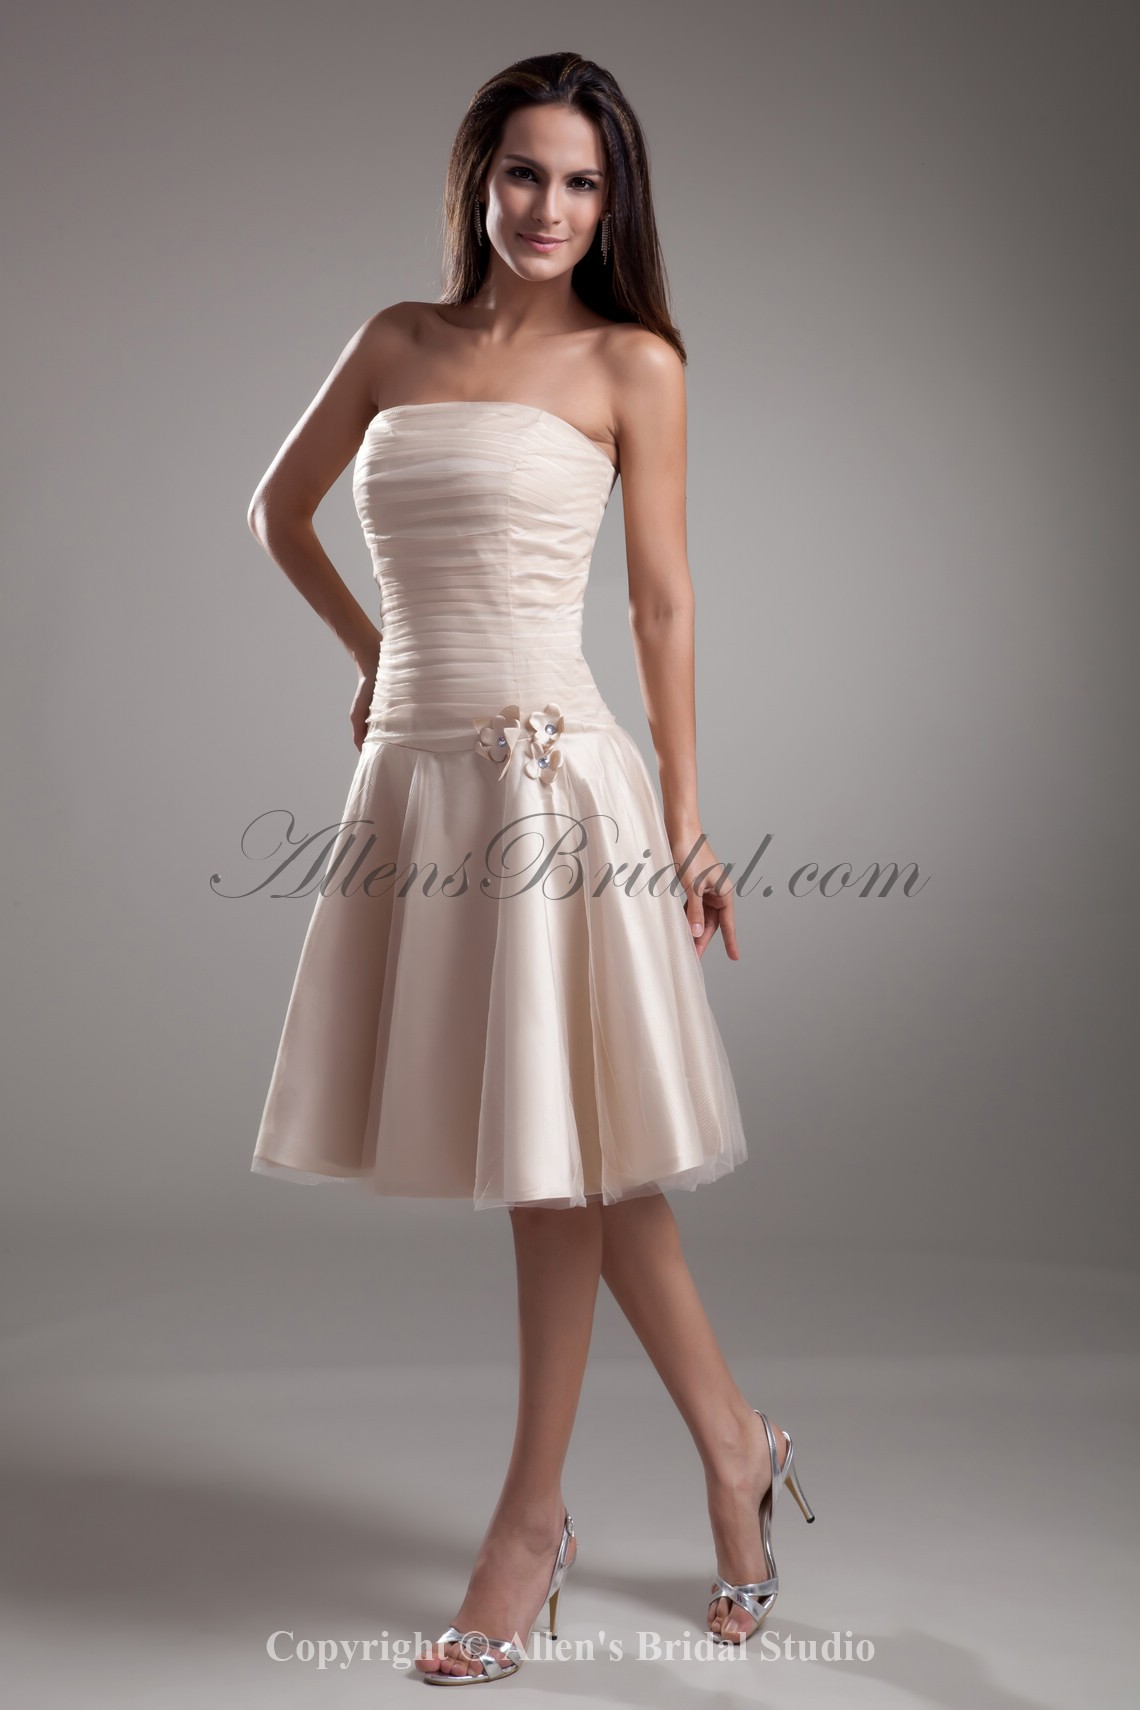 /726-5813/satin-and-tulle-strapless-knee-length-a-line-flowers-cocktail-dress.jpg